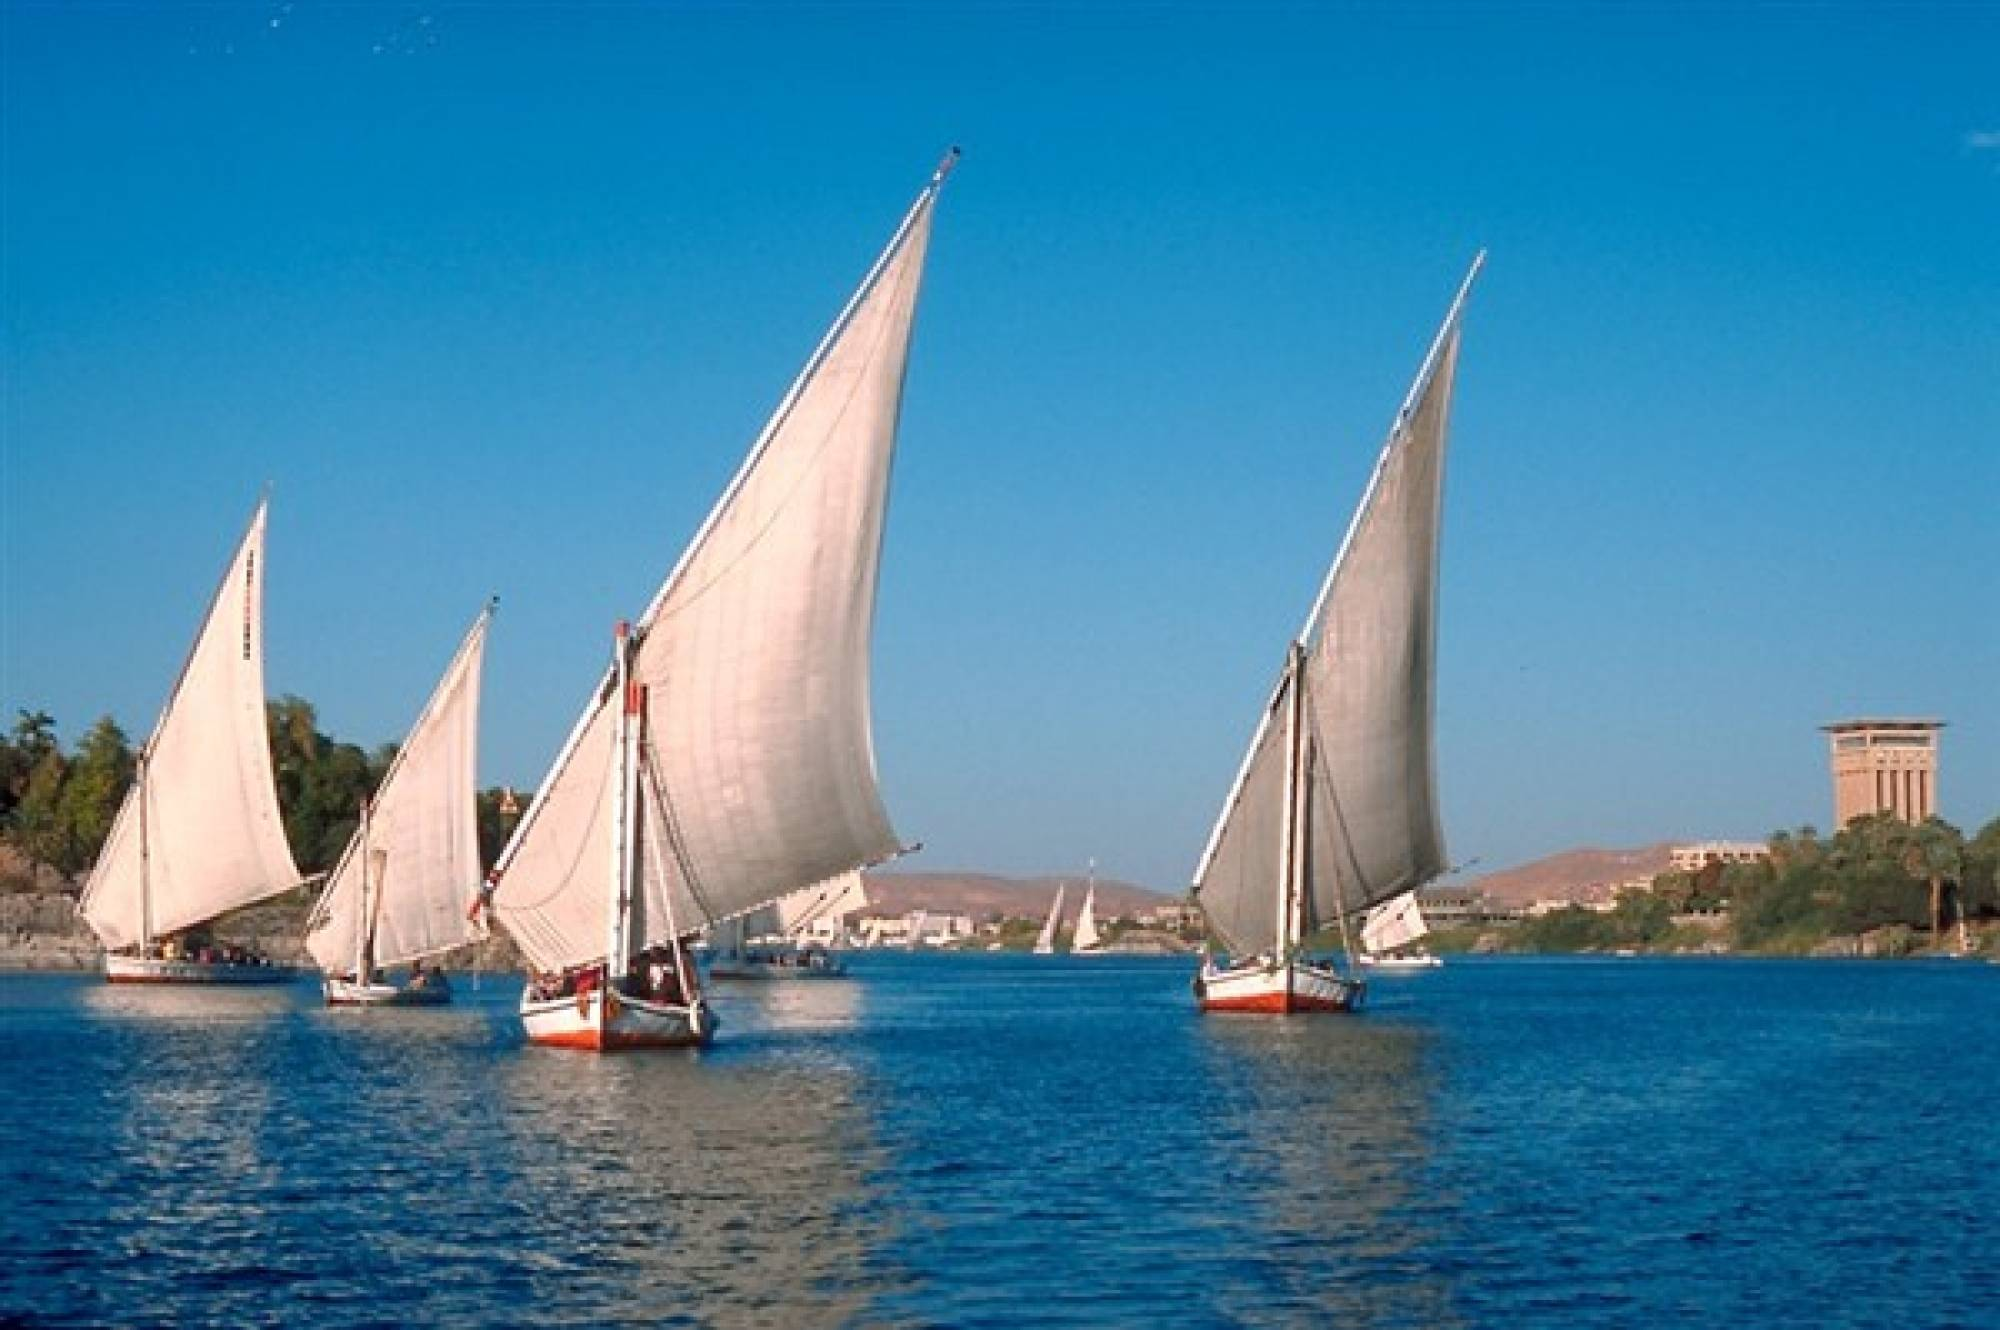 Felucca Trip To The Botanical Island In Aswan